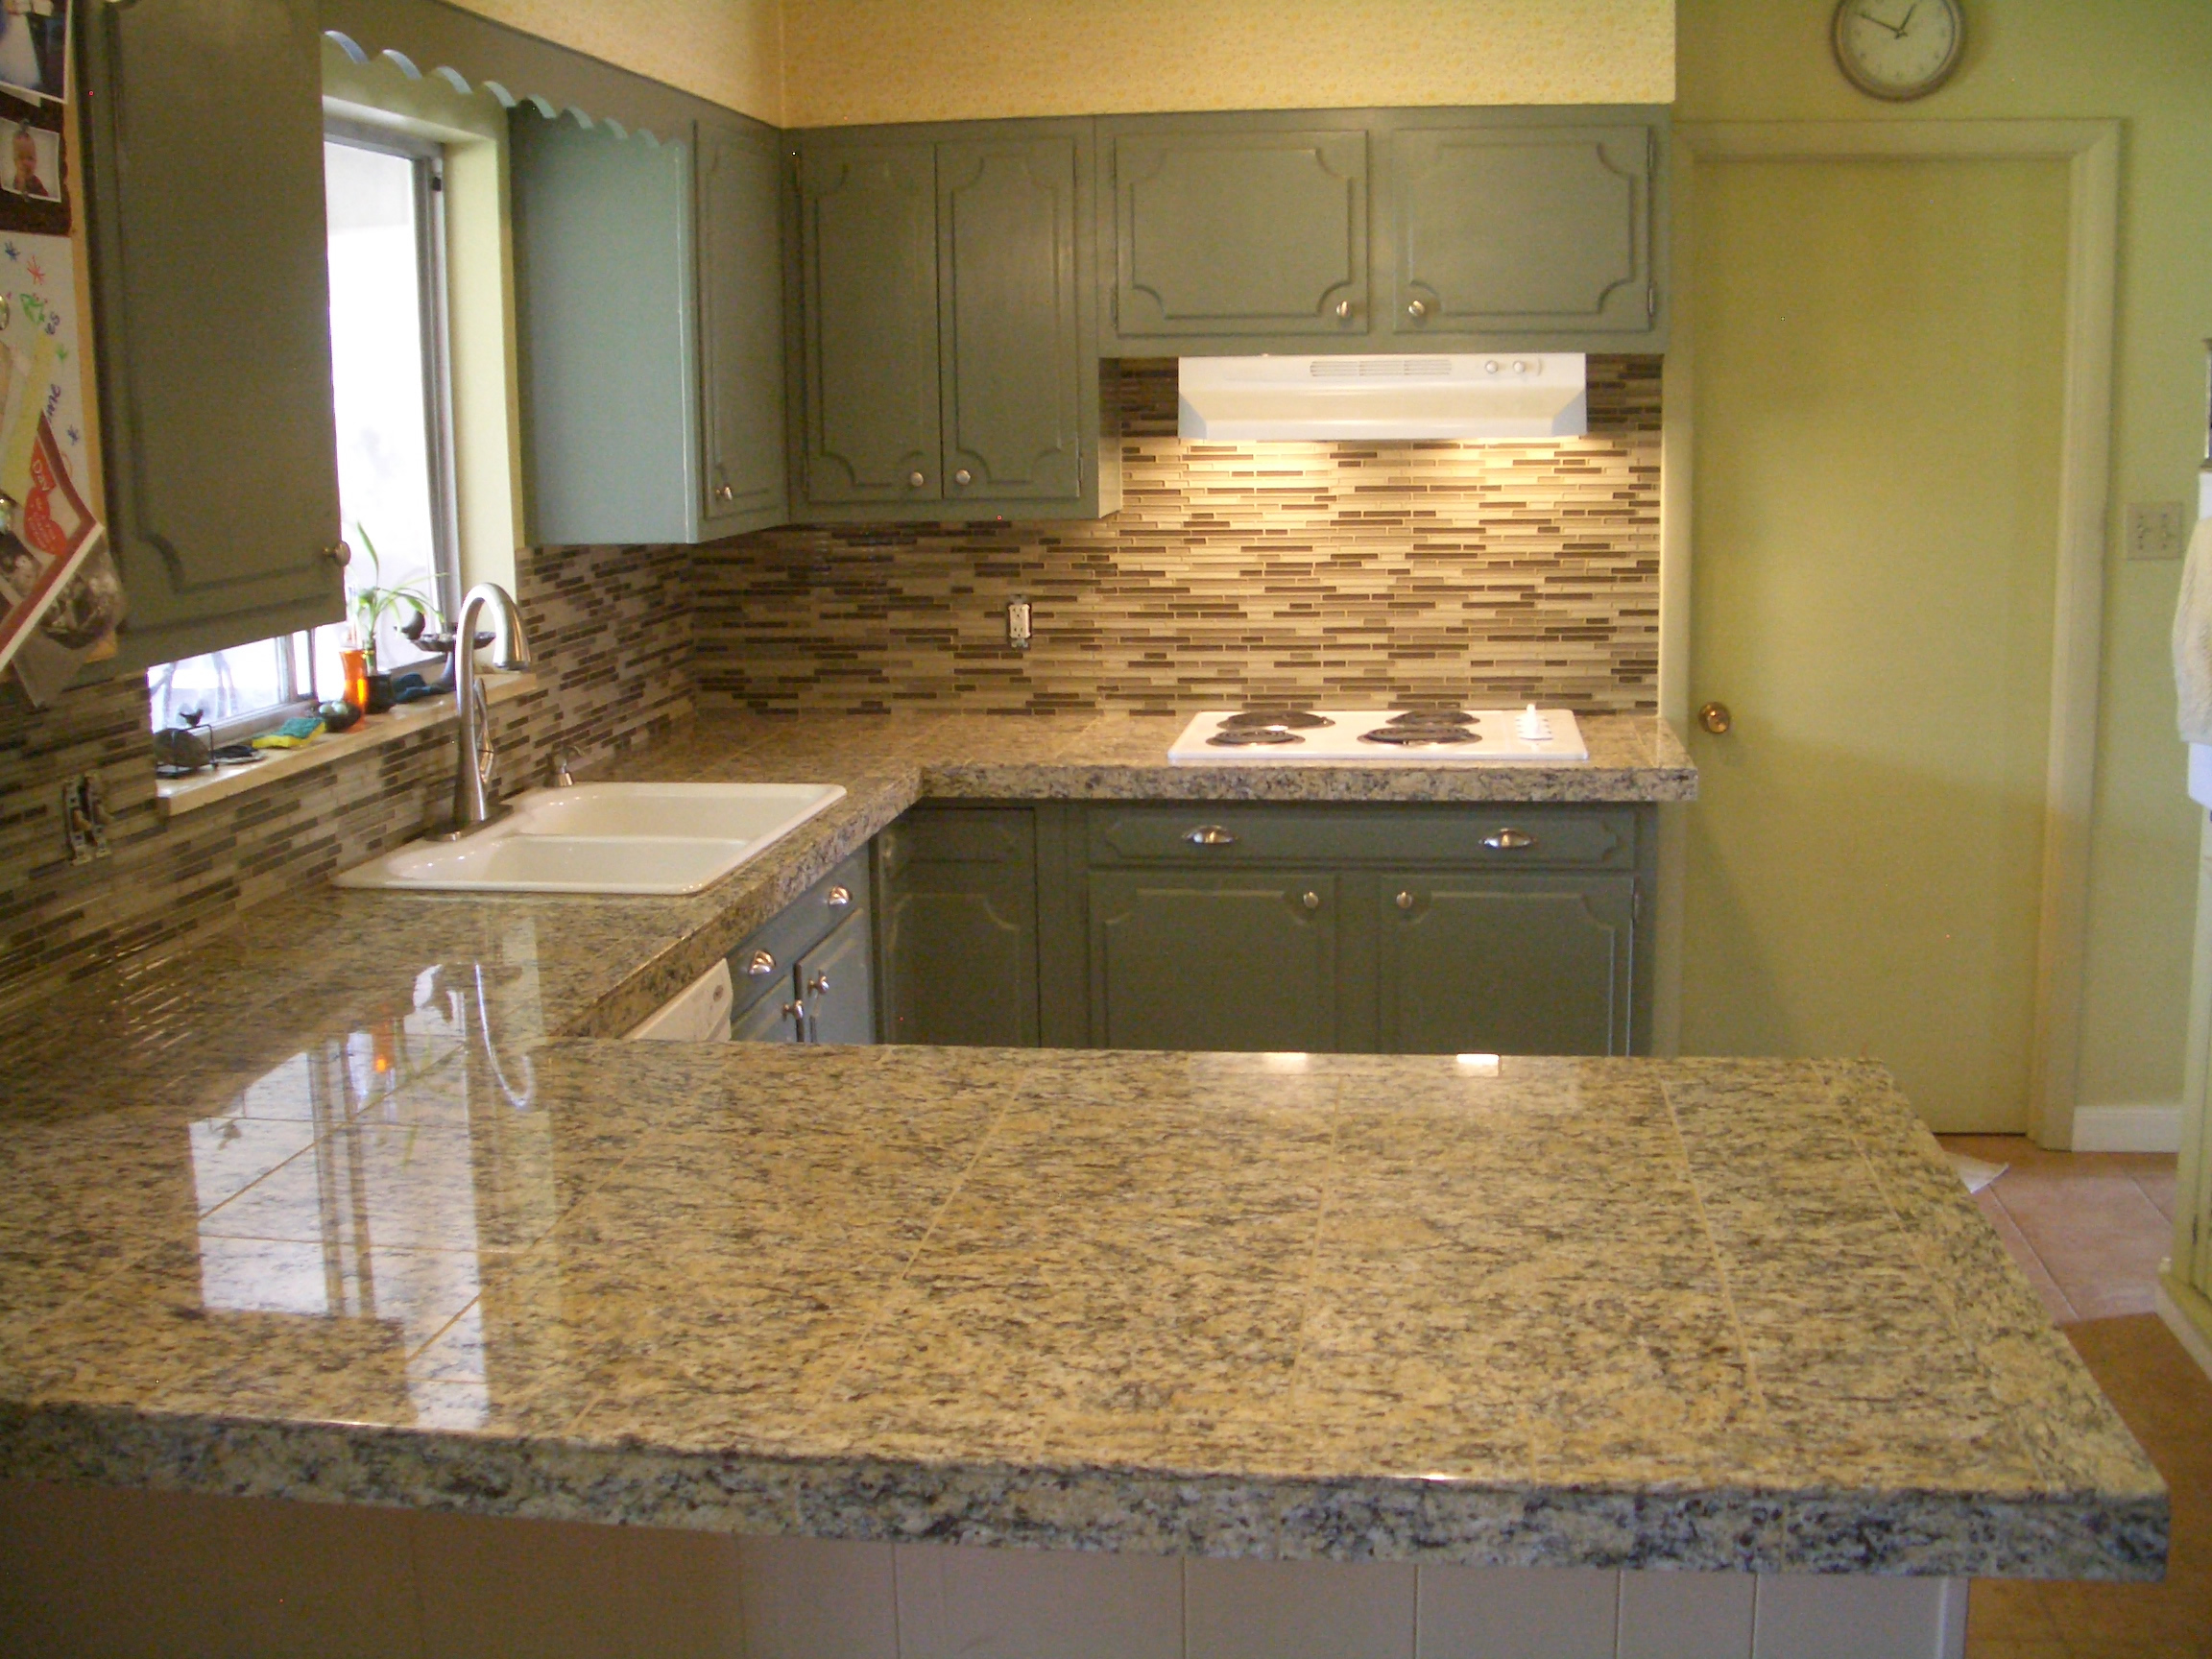 Glass tile kitchen backsplash special only 899 - Kitchen tile backsplash photos ...